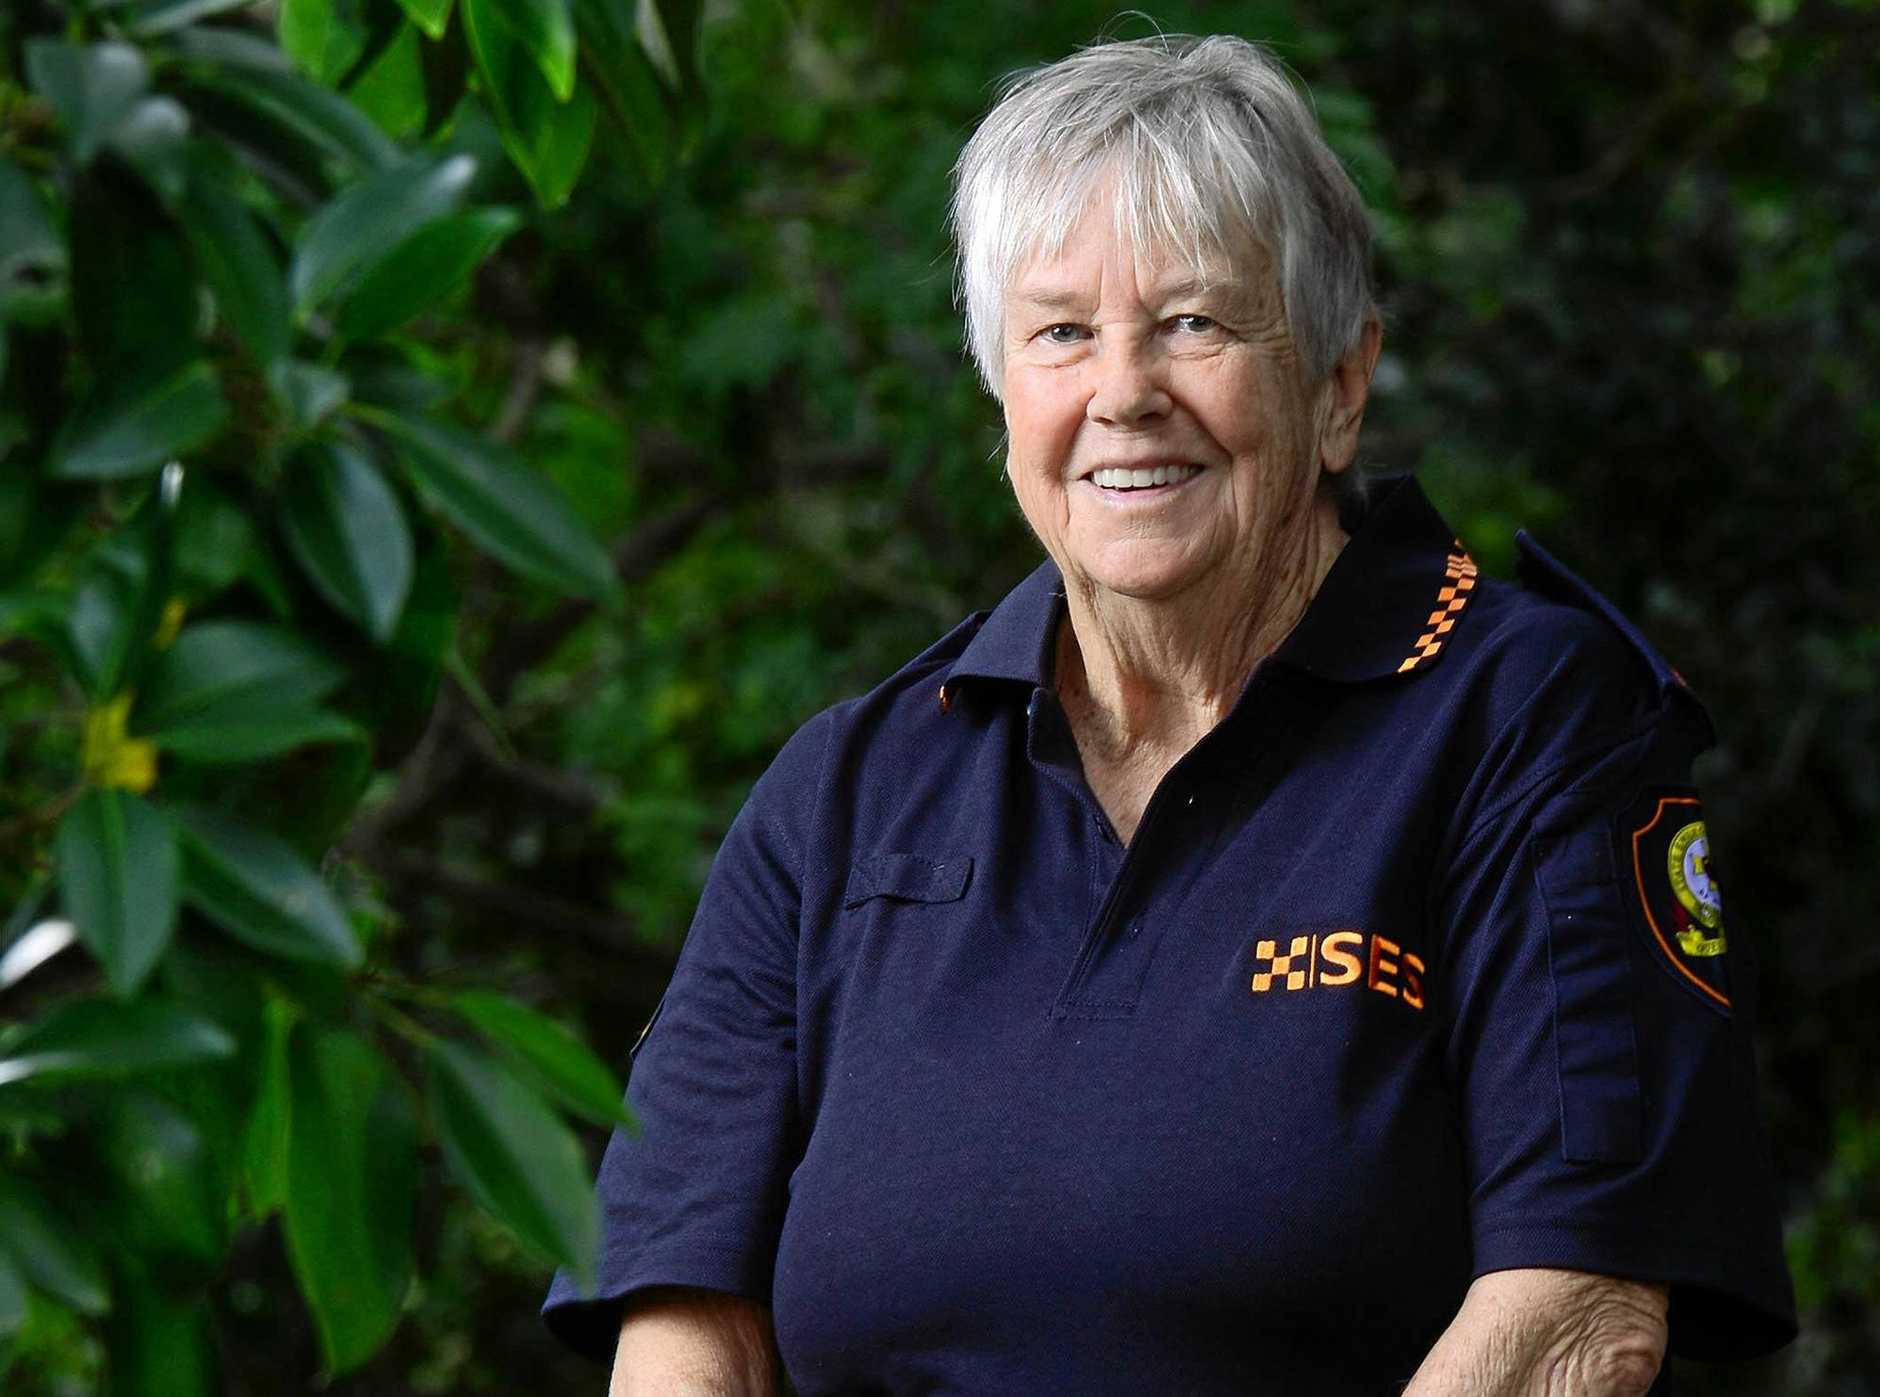 AWARD TTLE: Beth Suhrs 33 year commitment to the SES has been recognised through the Australian Honours system.